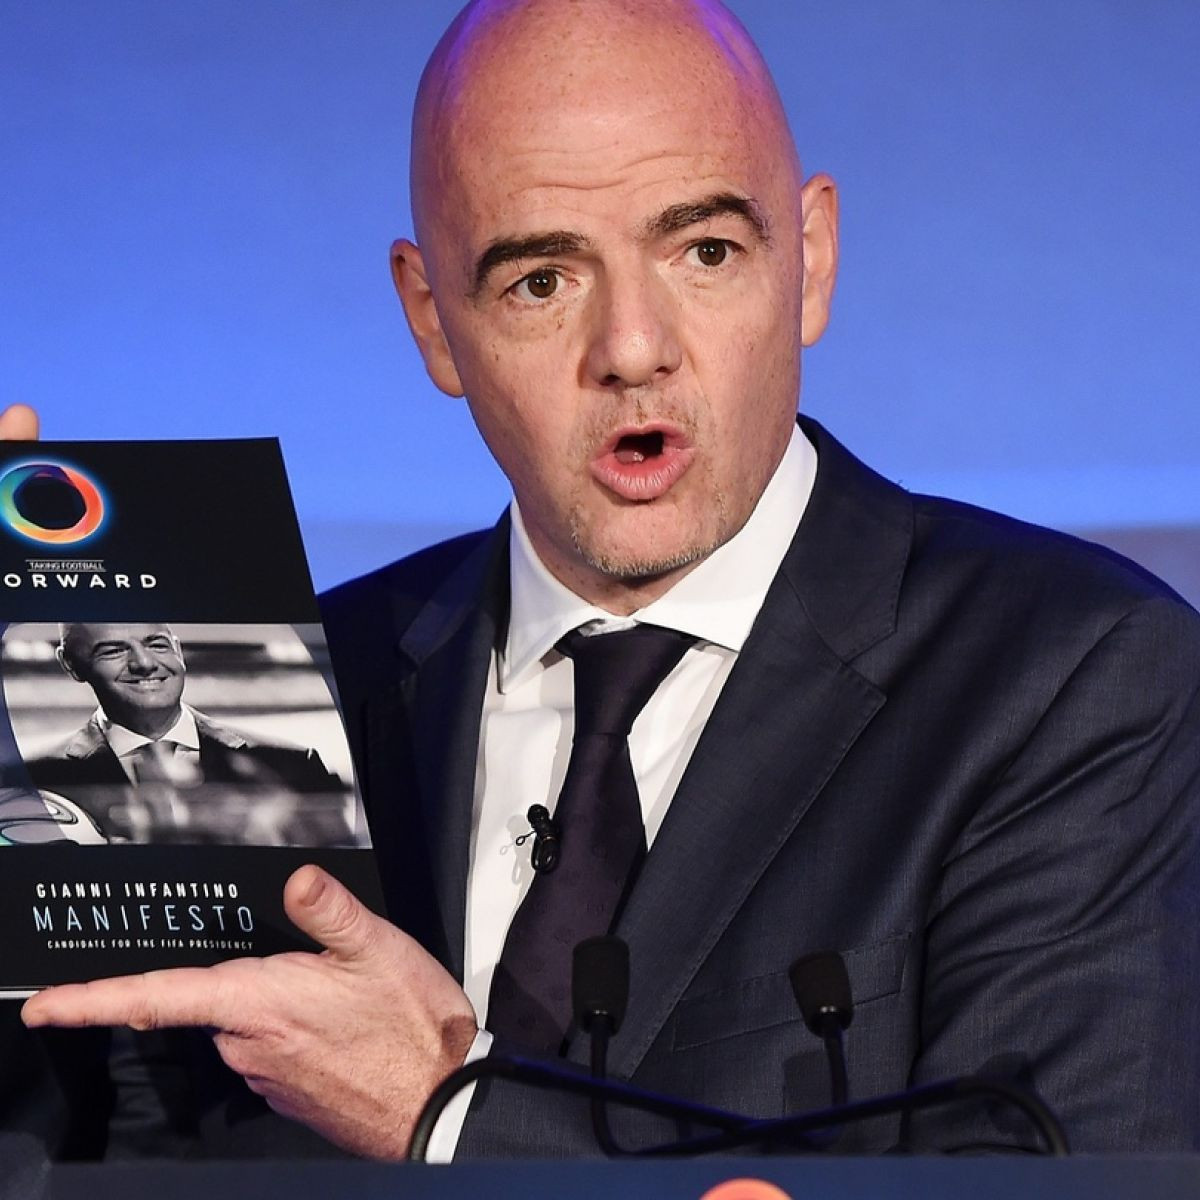 Gianni Infantino promised he would create extra wealth for Member Federations in his manifesto during his successful campaign to become FIFA President ©Getty Images